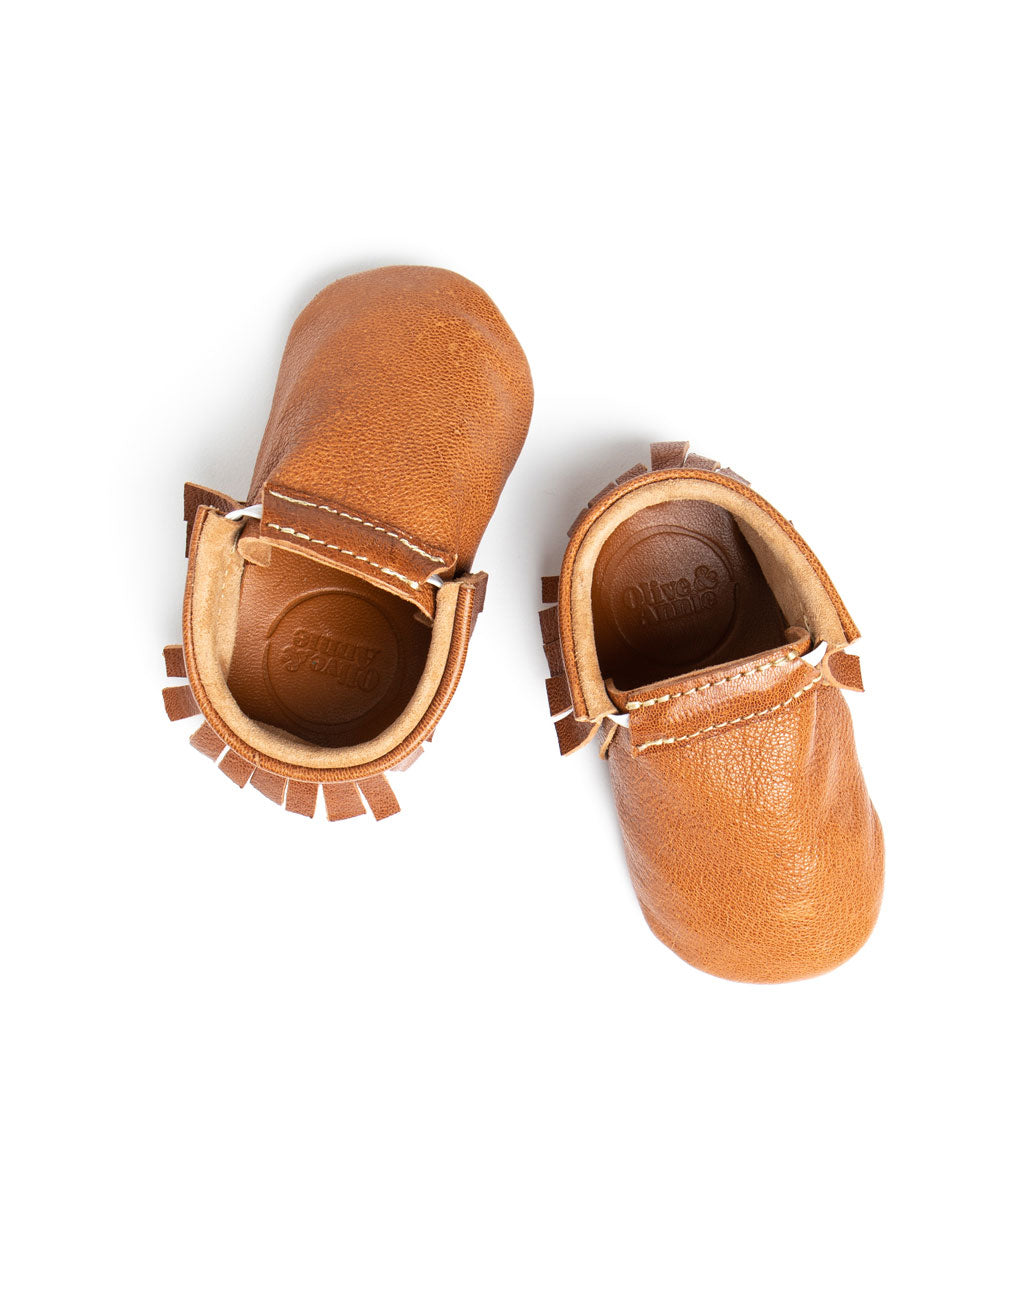 Tan Baby Moccasins | The Little Market